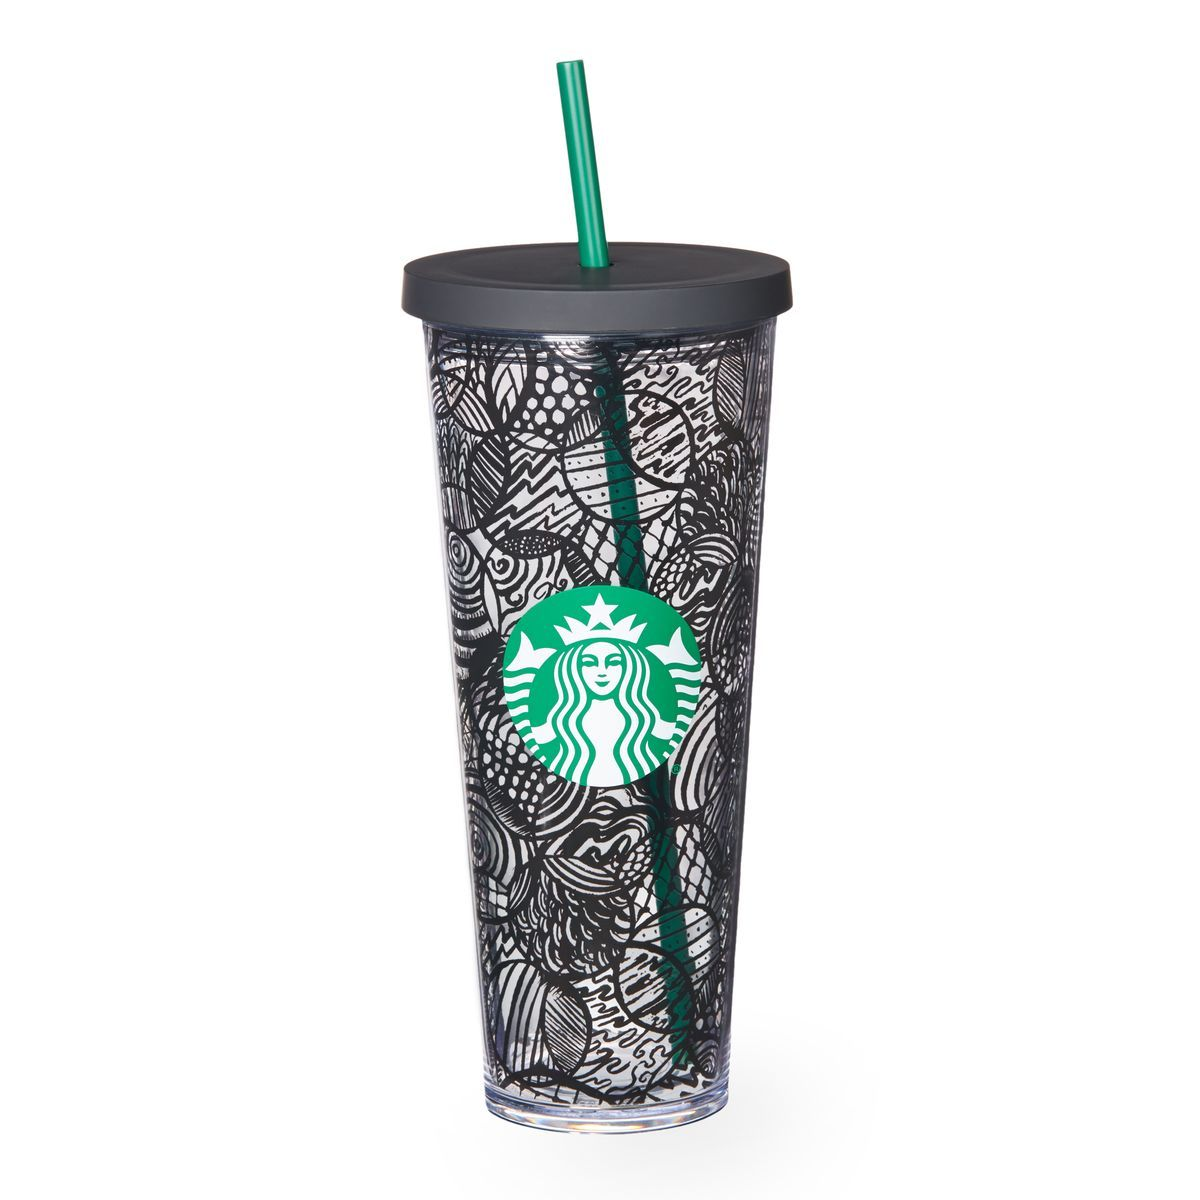 1c40f2bdc7b A sturdy, Venti-size clear plastic Cold Cup with double wall construction,  black line design and reusable straw.